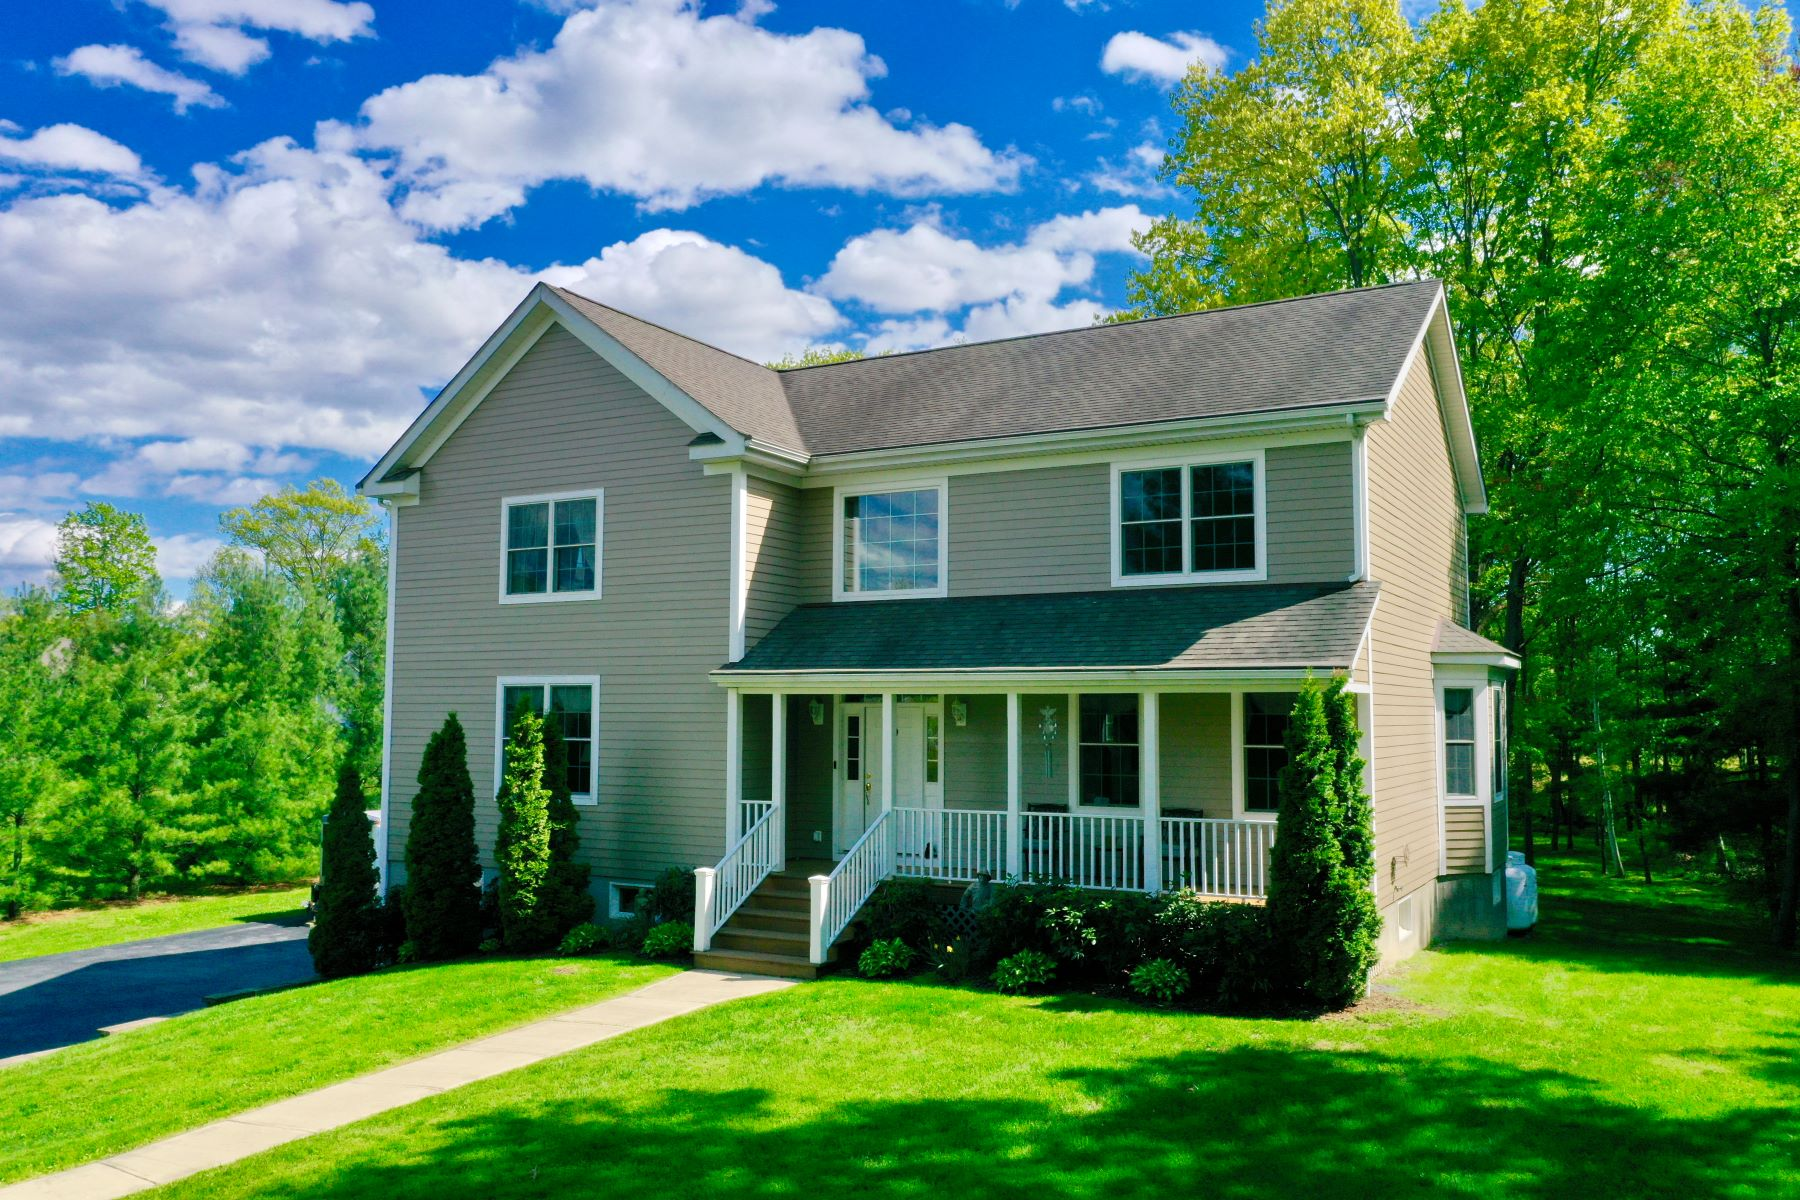 Single Family Homes for Sale at Four Seasons of Perpetual Zen 233 Lake Road Pine Plains, New York 12567 United States